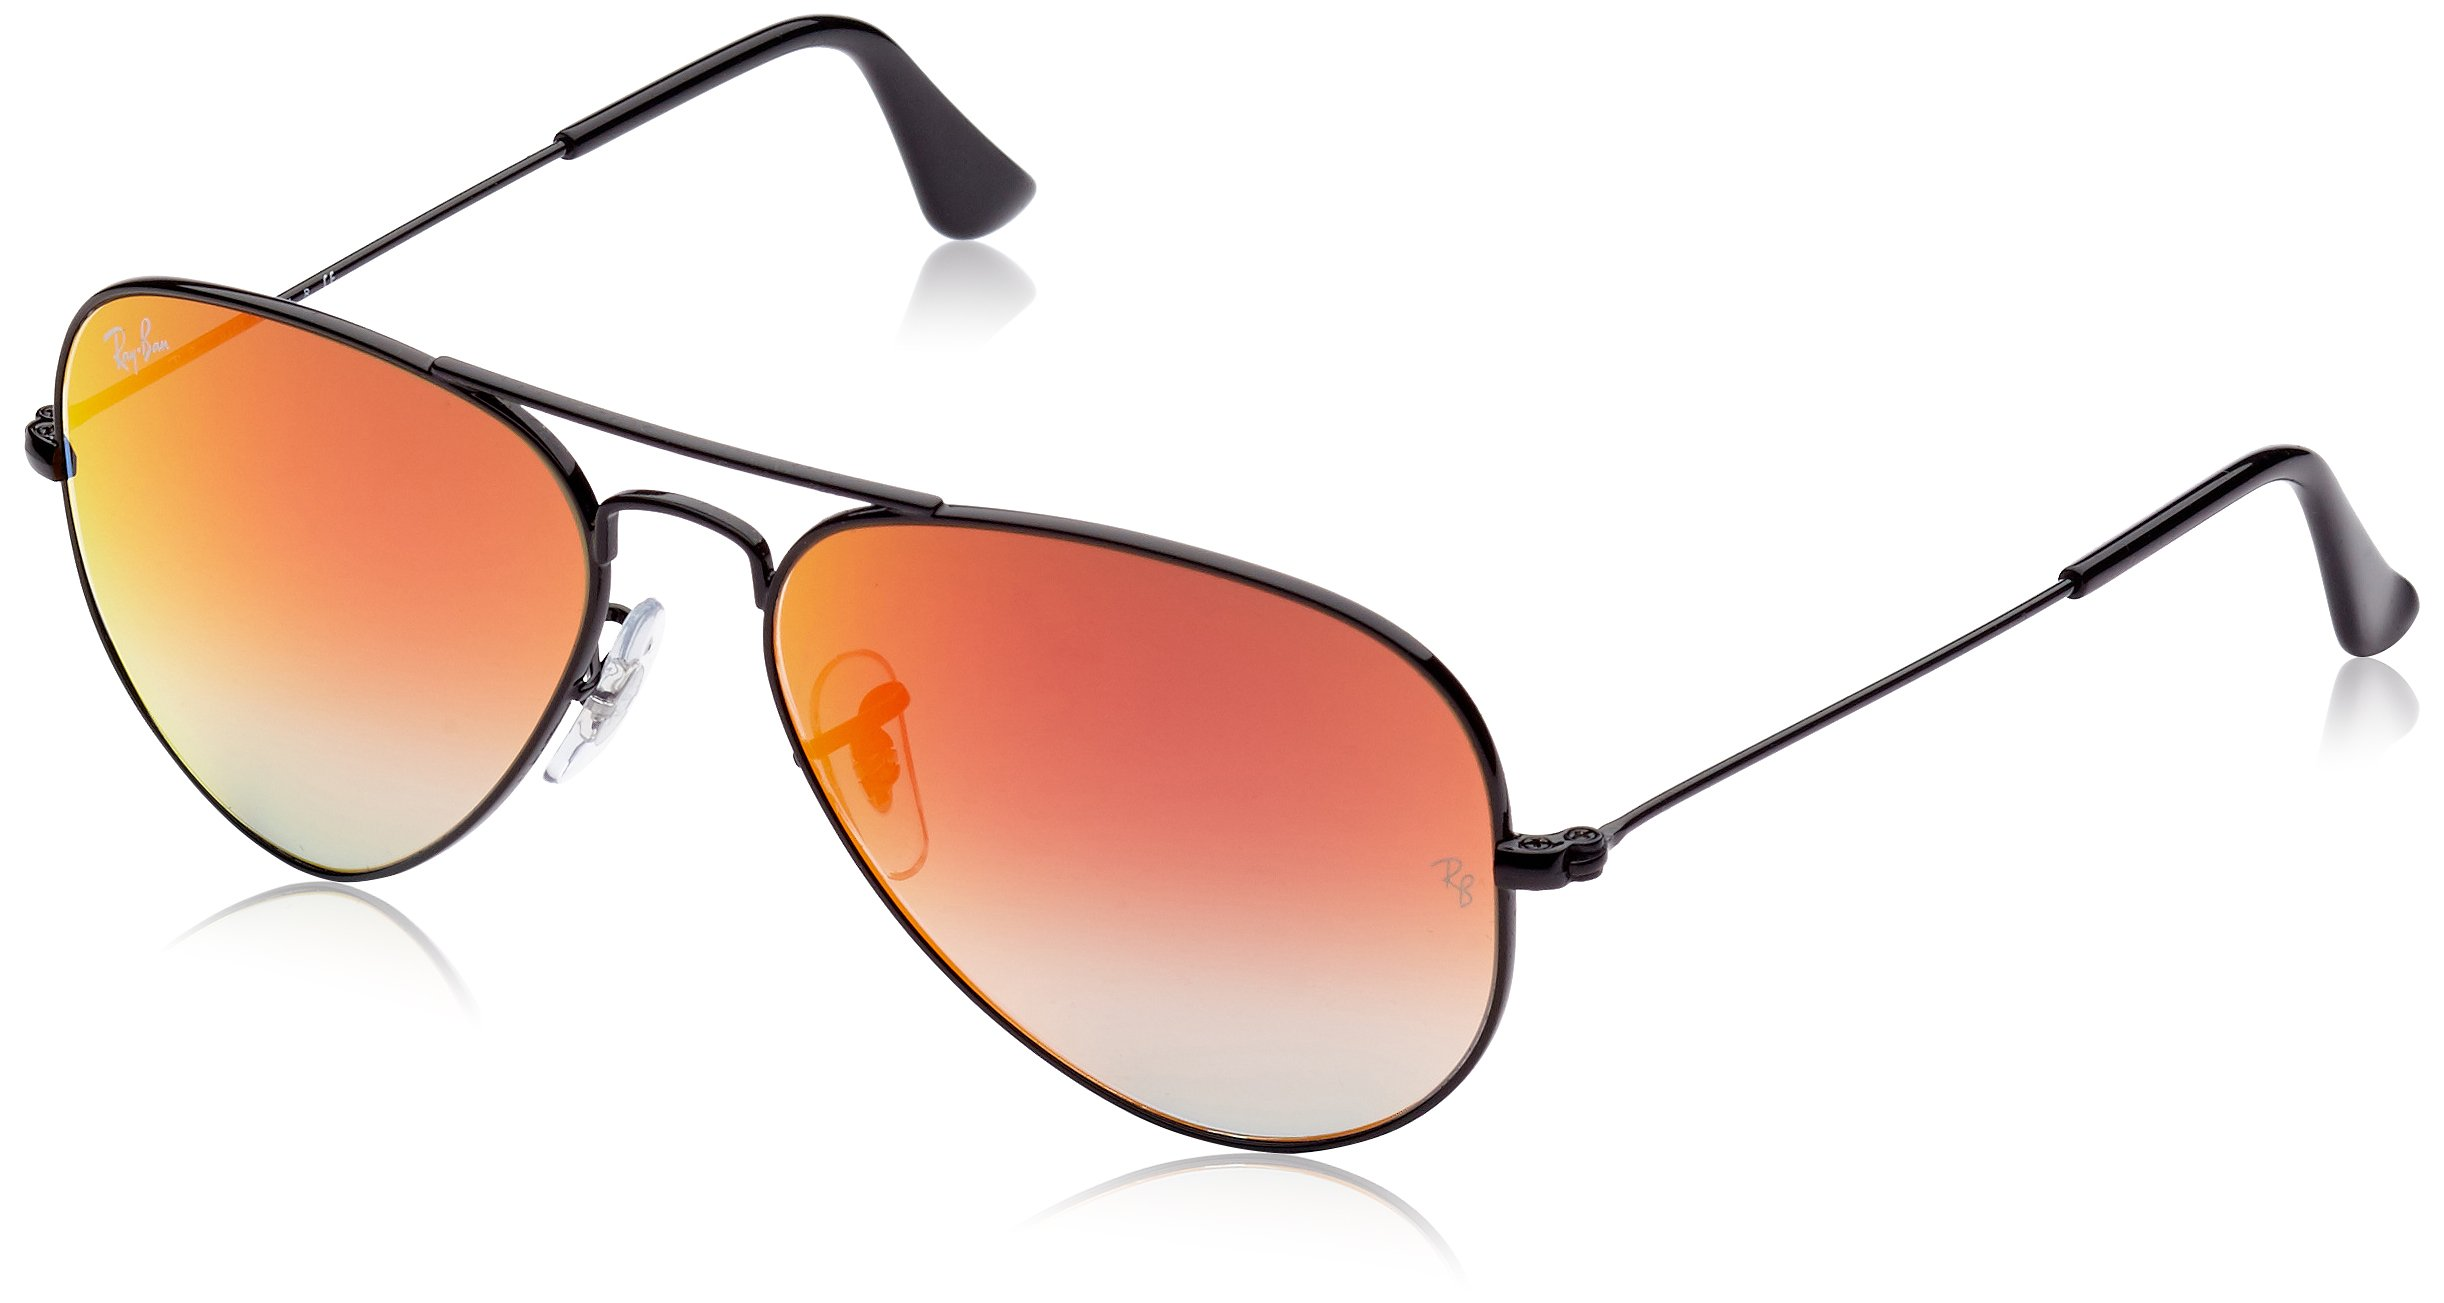 Ray-Ban 3025 Aviator Large Metal Mirrored Non-Polarized Sunglasses, Shiny Black/Mirror Gradient Red ( 002/4W), 55mm by Ray-Ban